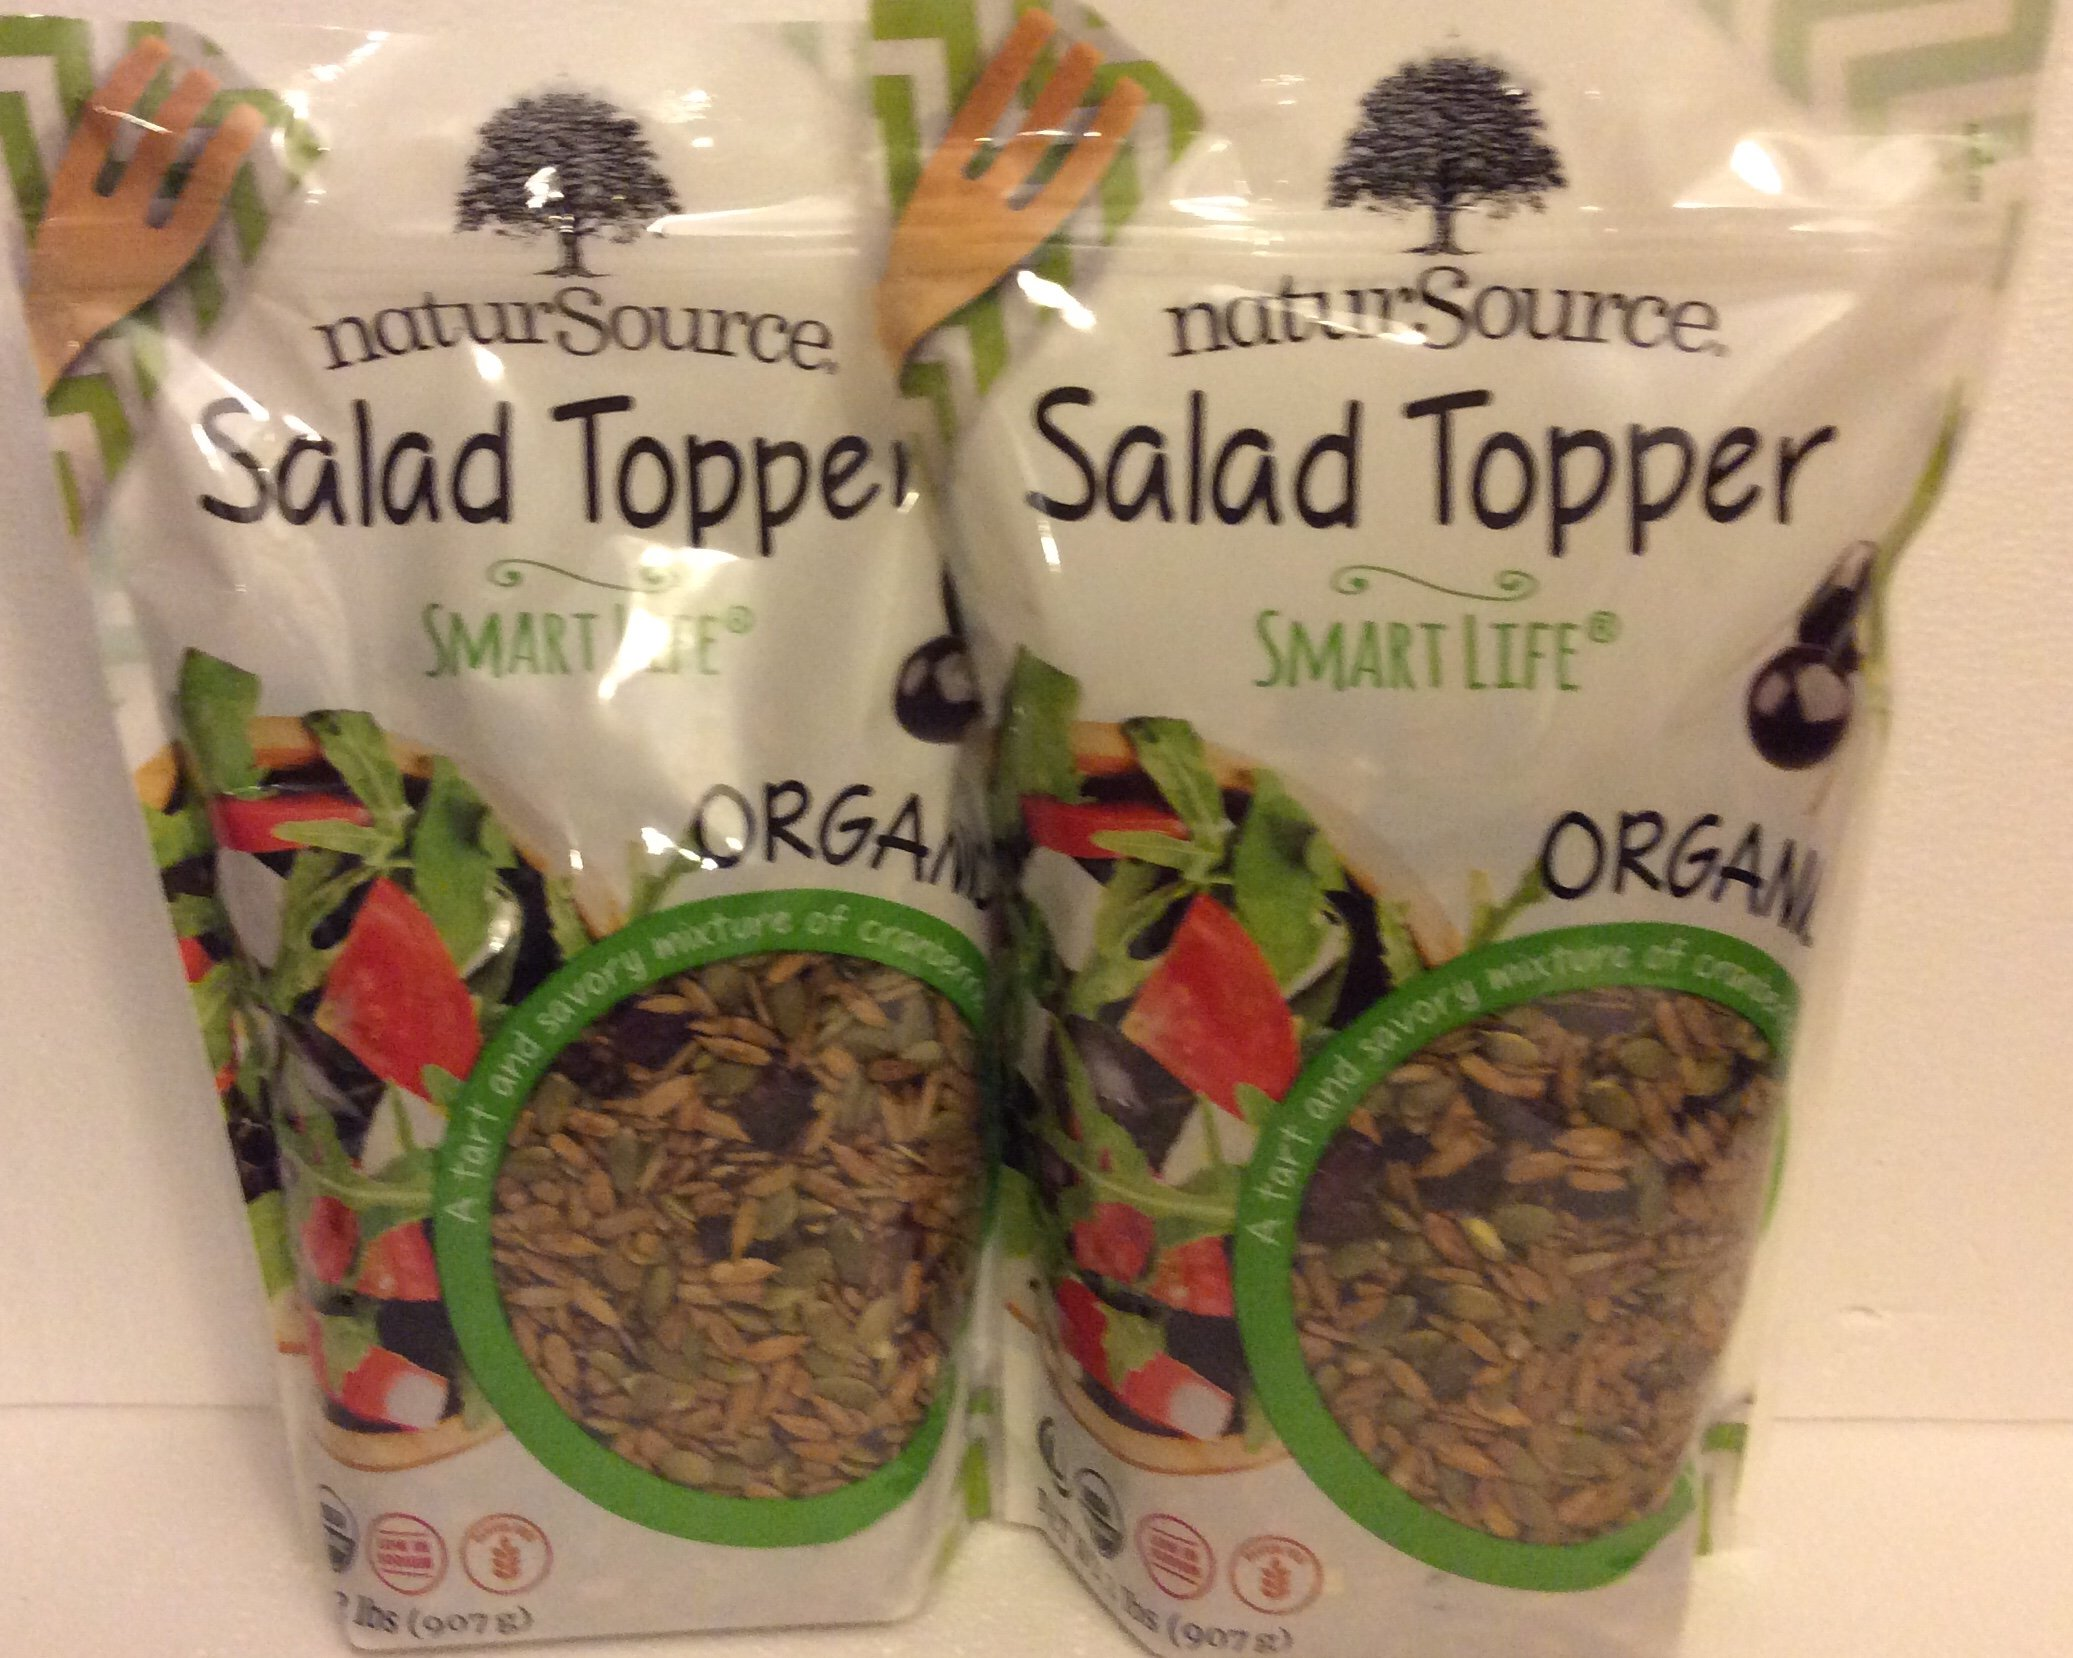 NaturSource (2 PACK) Organic Salad Topper Smart Life 2LBS Each Releasable Bag by NaturSource